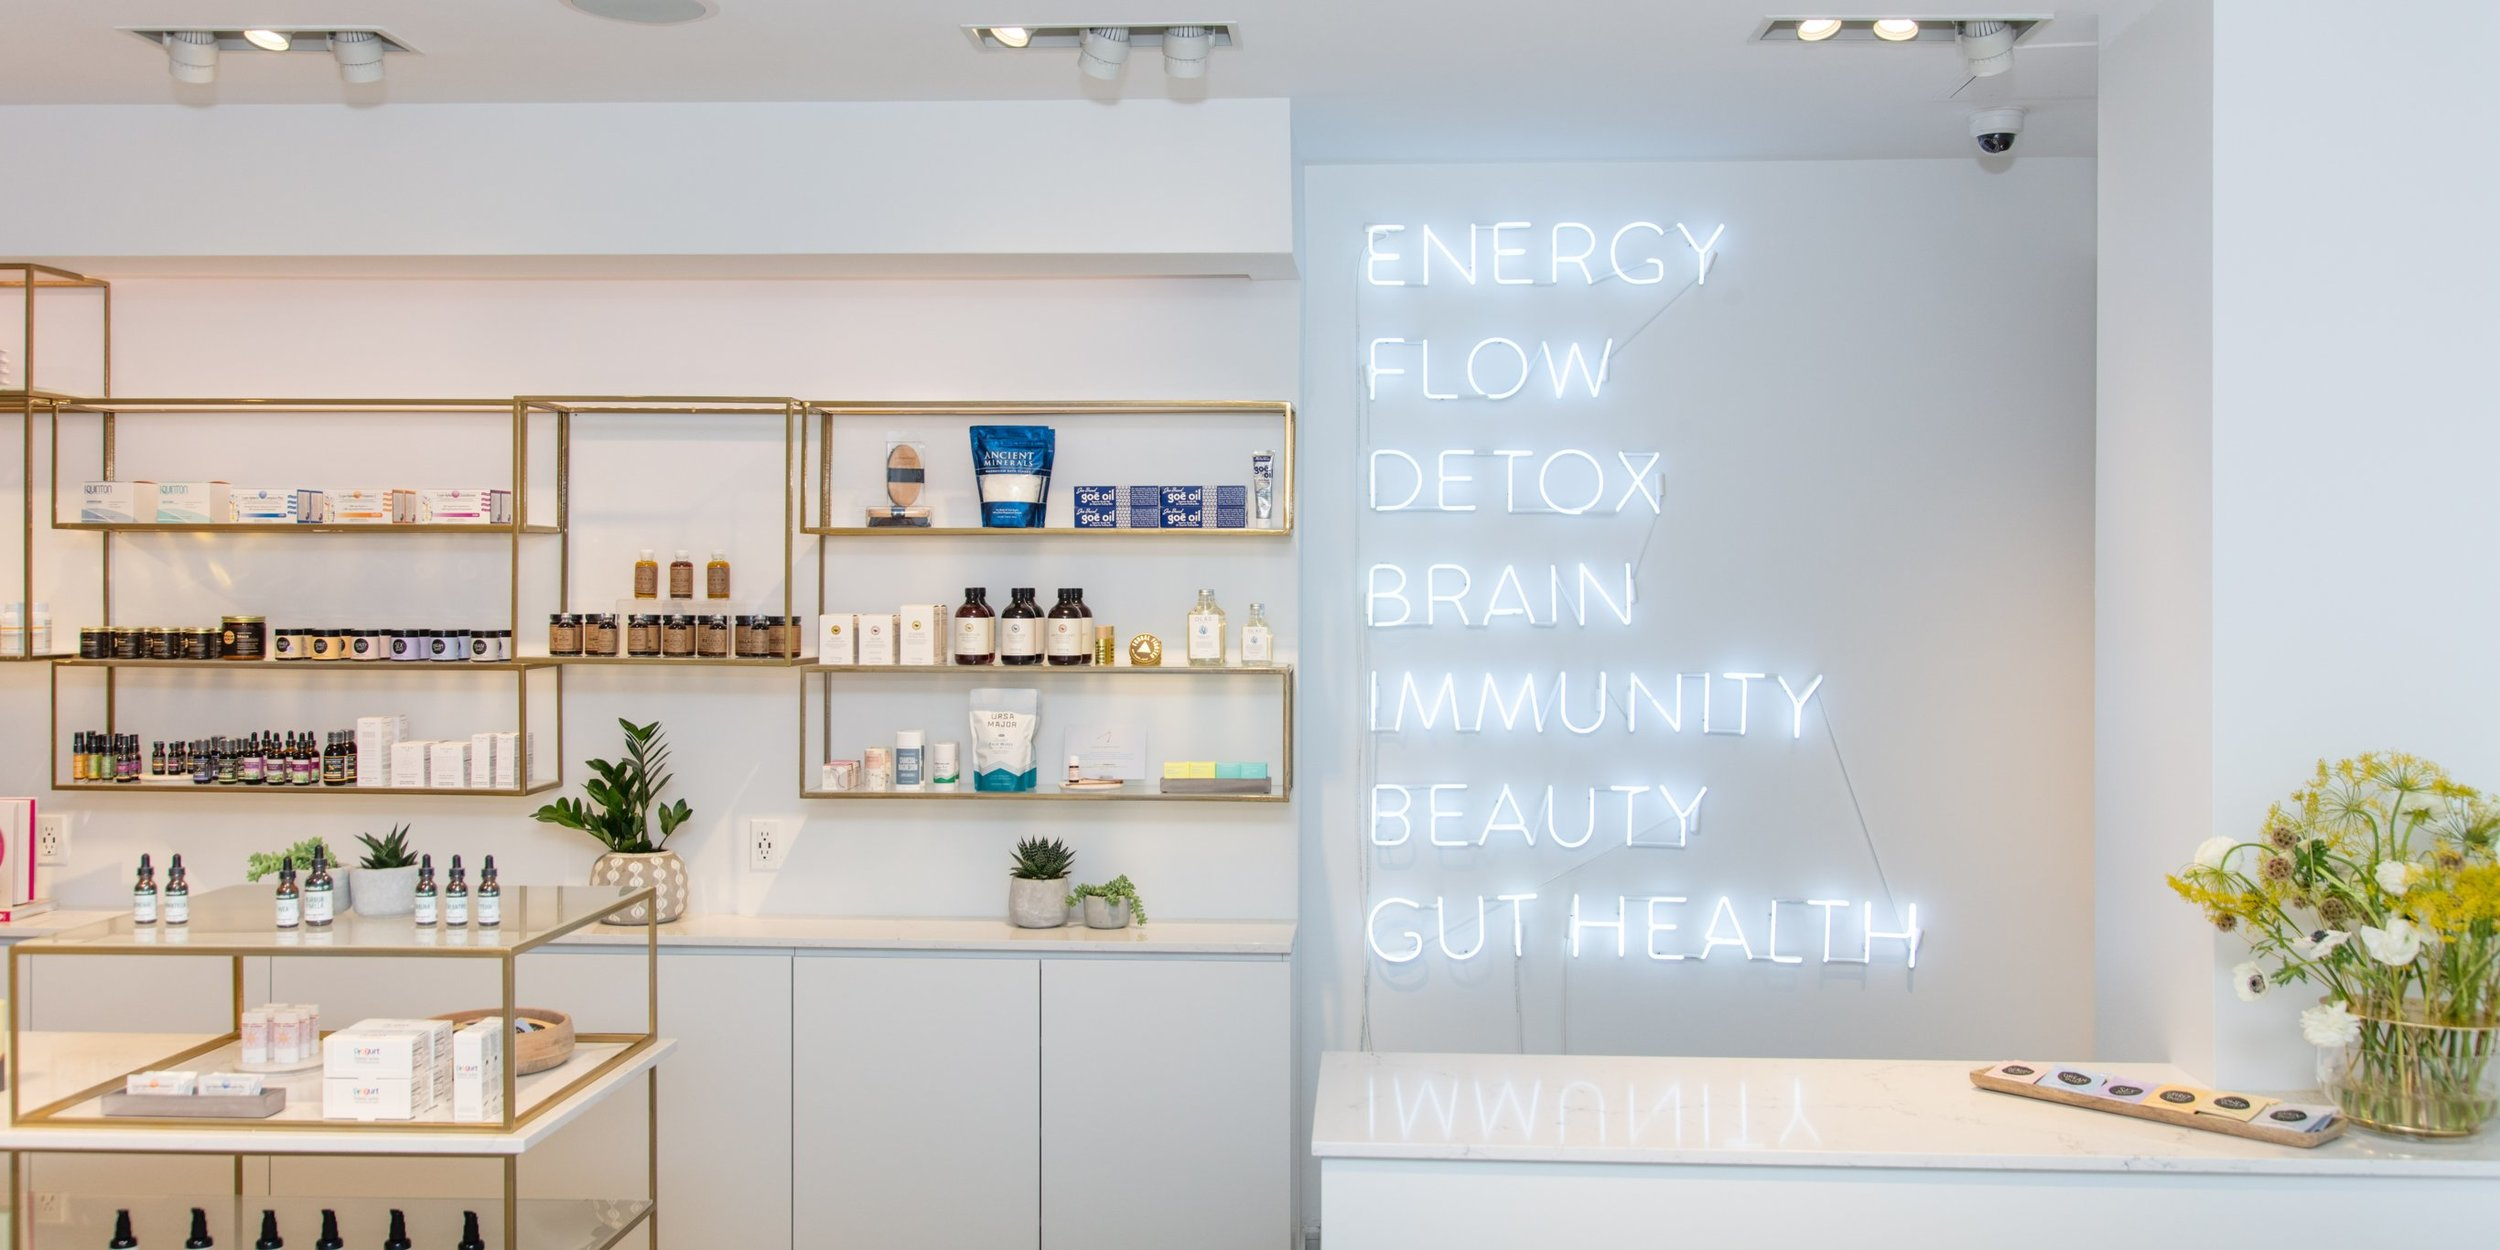 Clean Market  Cafe and tonic bar, featuring medical grade supplements and spa services